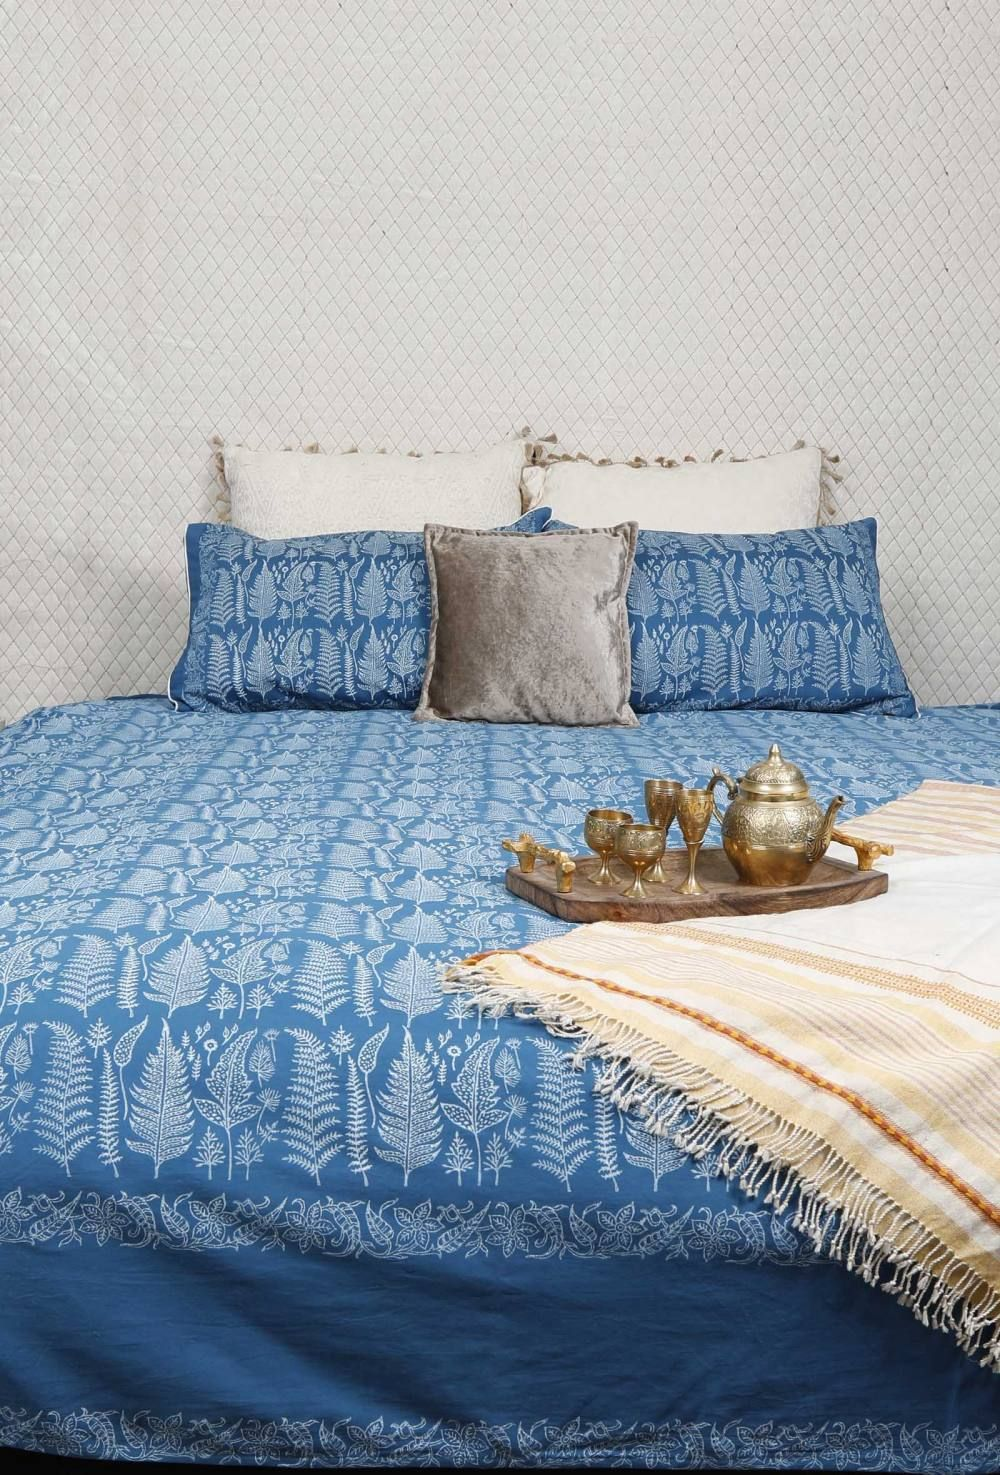 Cotton Bed Sheet With Pillow Covers In Blue And White Sheet